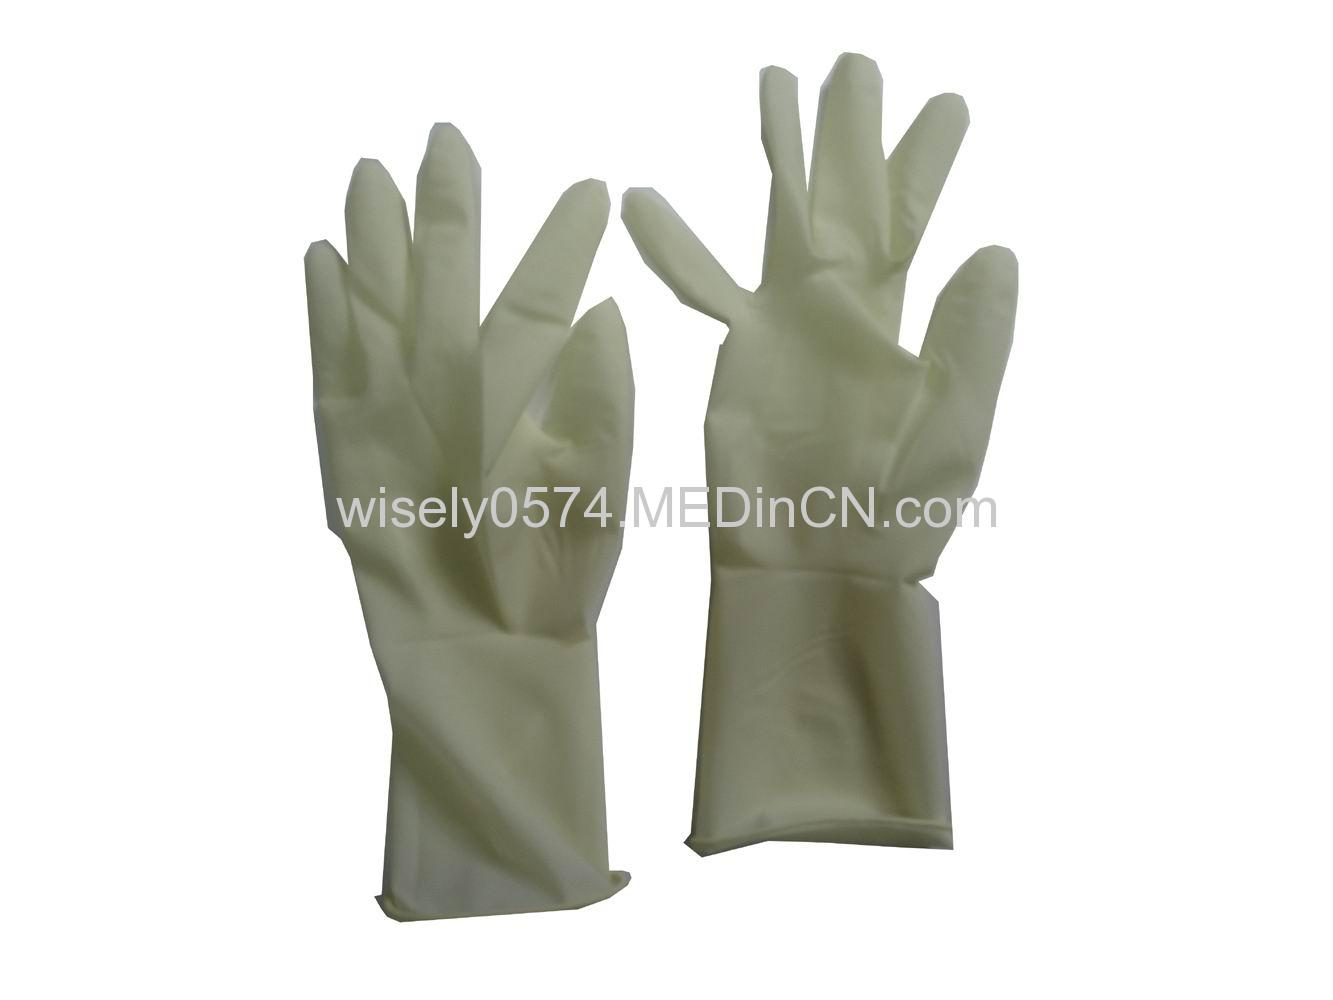 surgical powder or free gloves